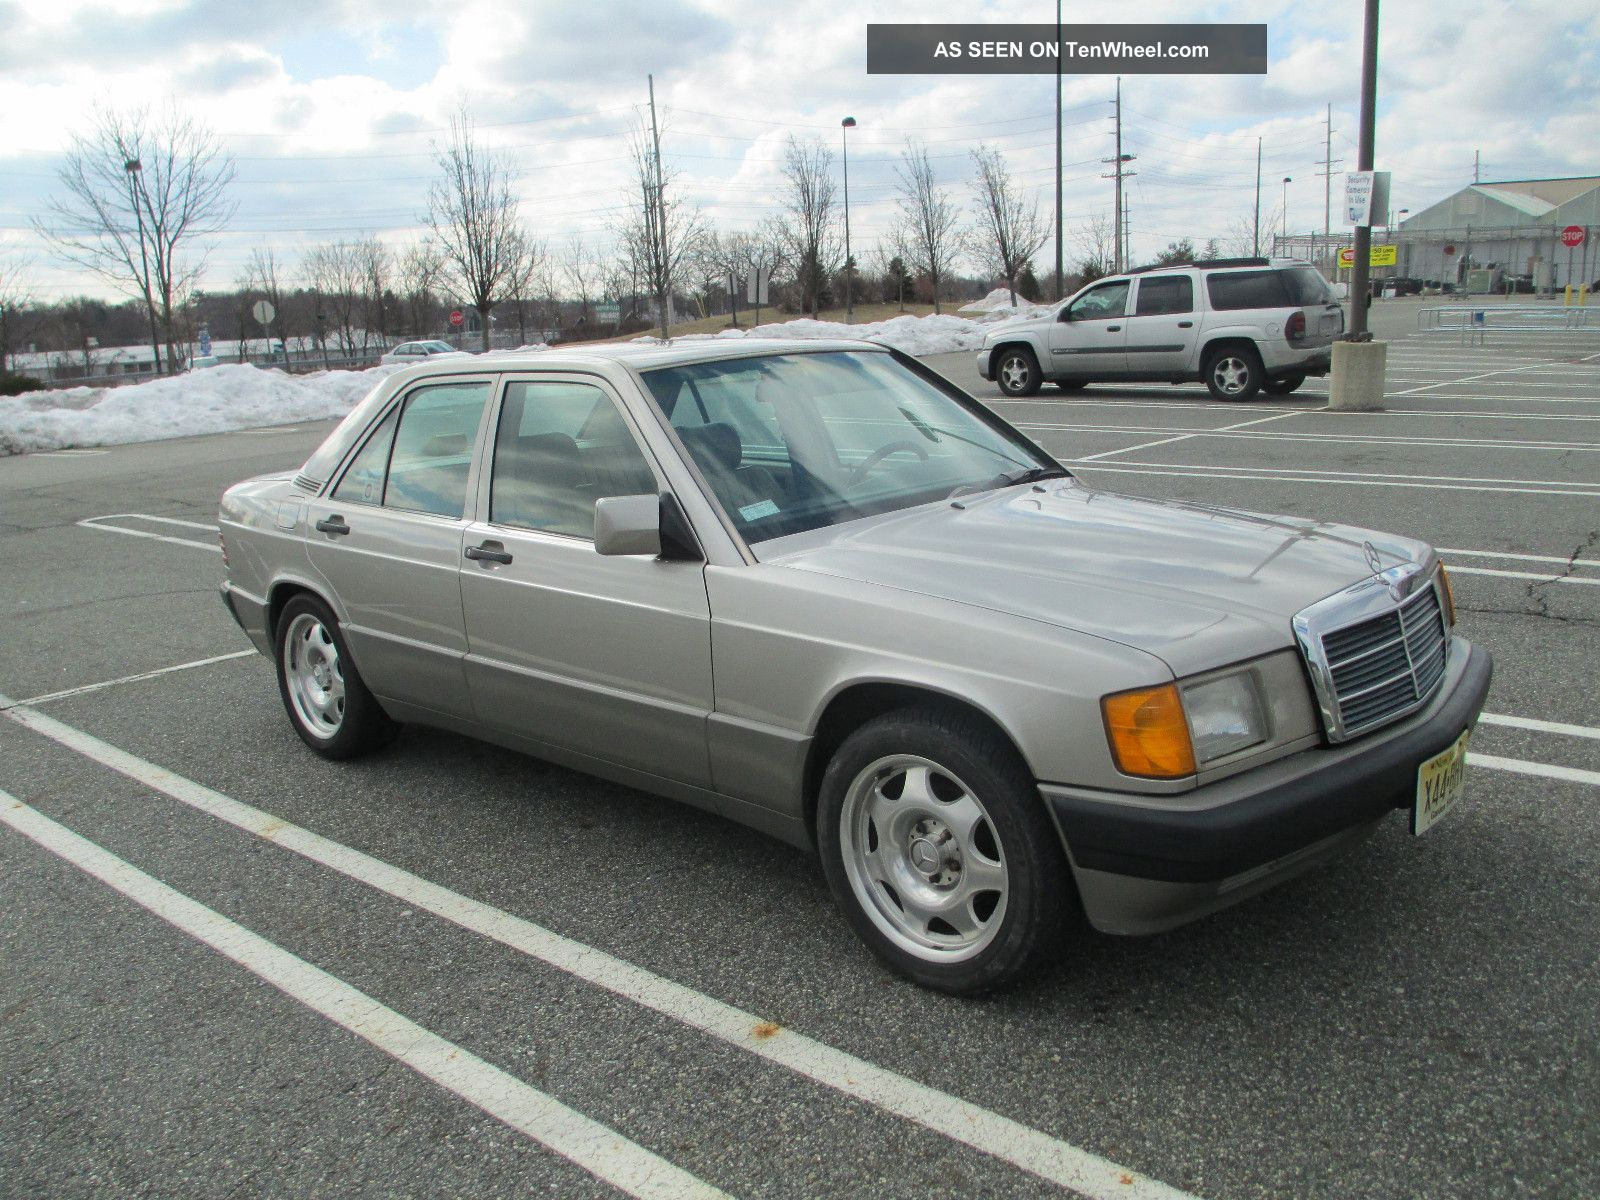 1991 mercedes benz 190e 2 6 i6 automatic smoked silver for 1991 mercedes benz